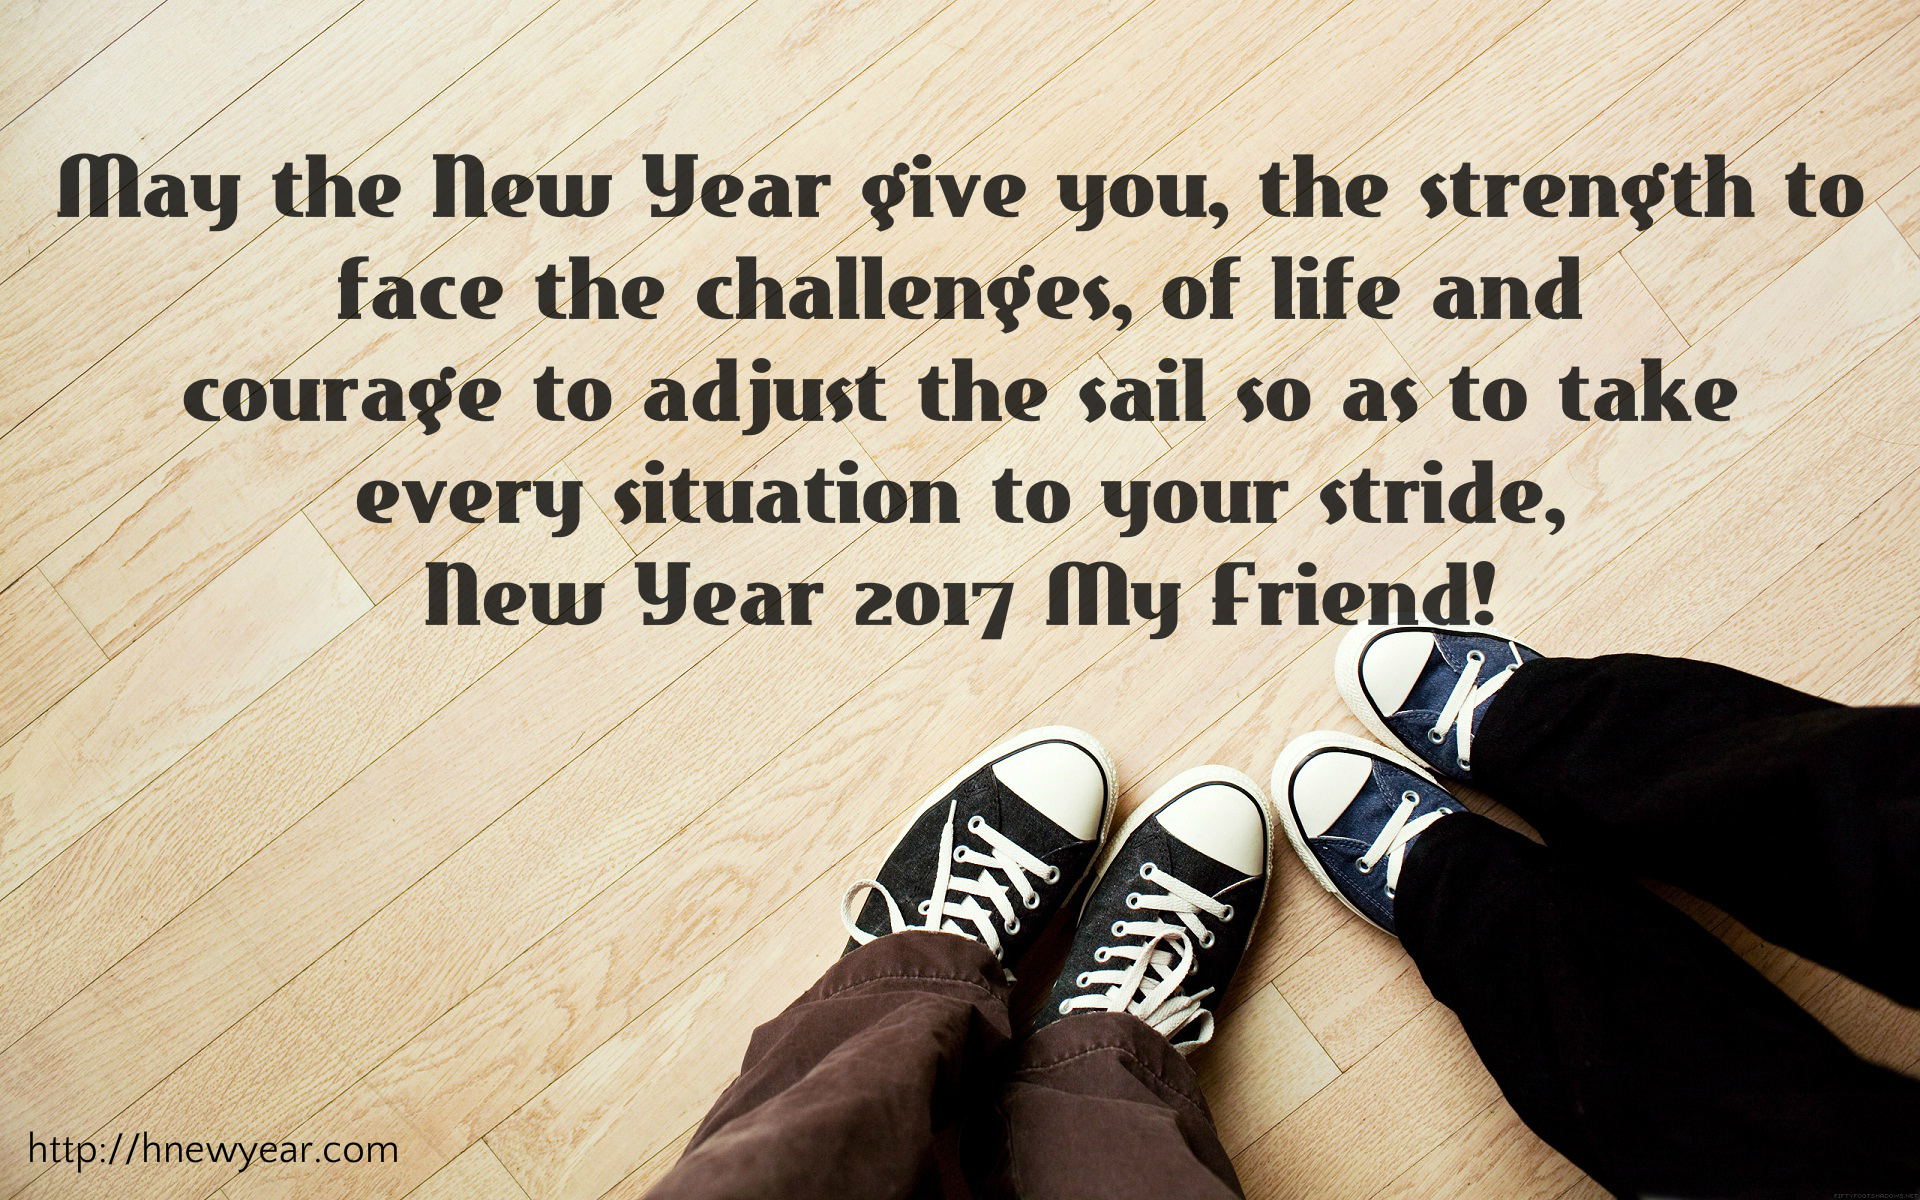 may the new year give you the strength to face the challenges of life and courage to adjust the sail so as to take every situation to your stride